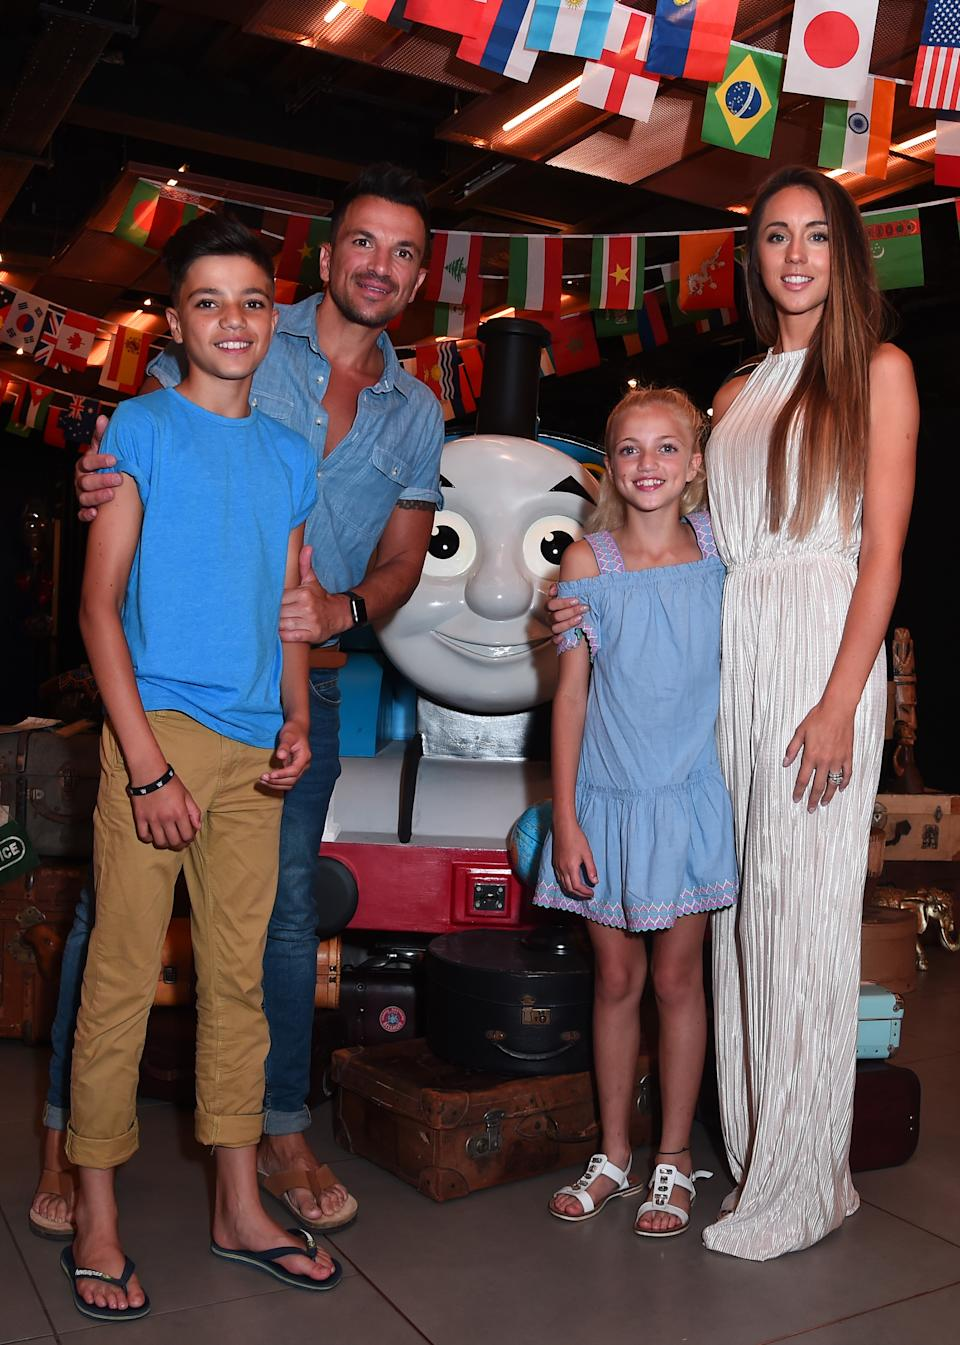 Emily Andrea with husband Peter Andre and step-children Junior and Princess in 2018. (Photo by Eamonn M. McCormack/Getty Images)